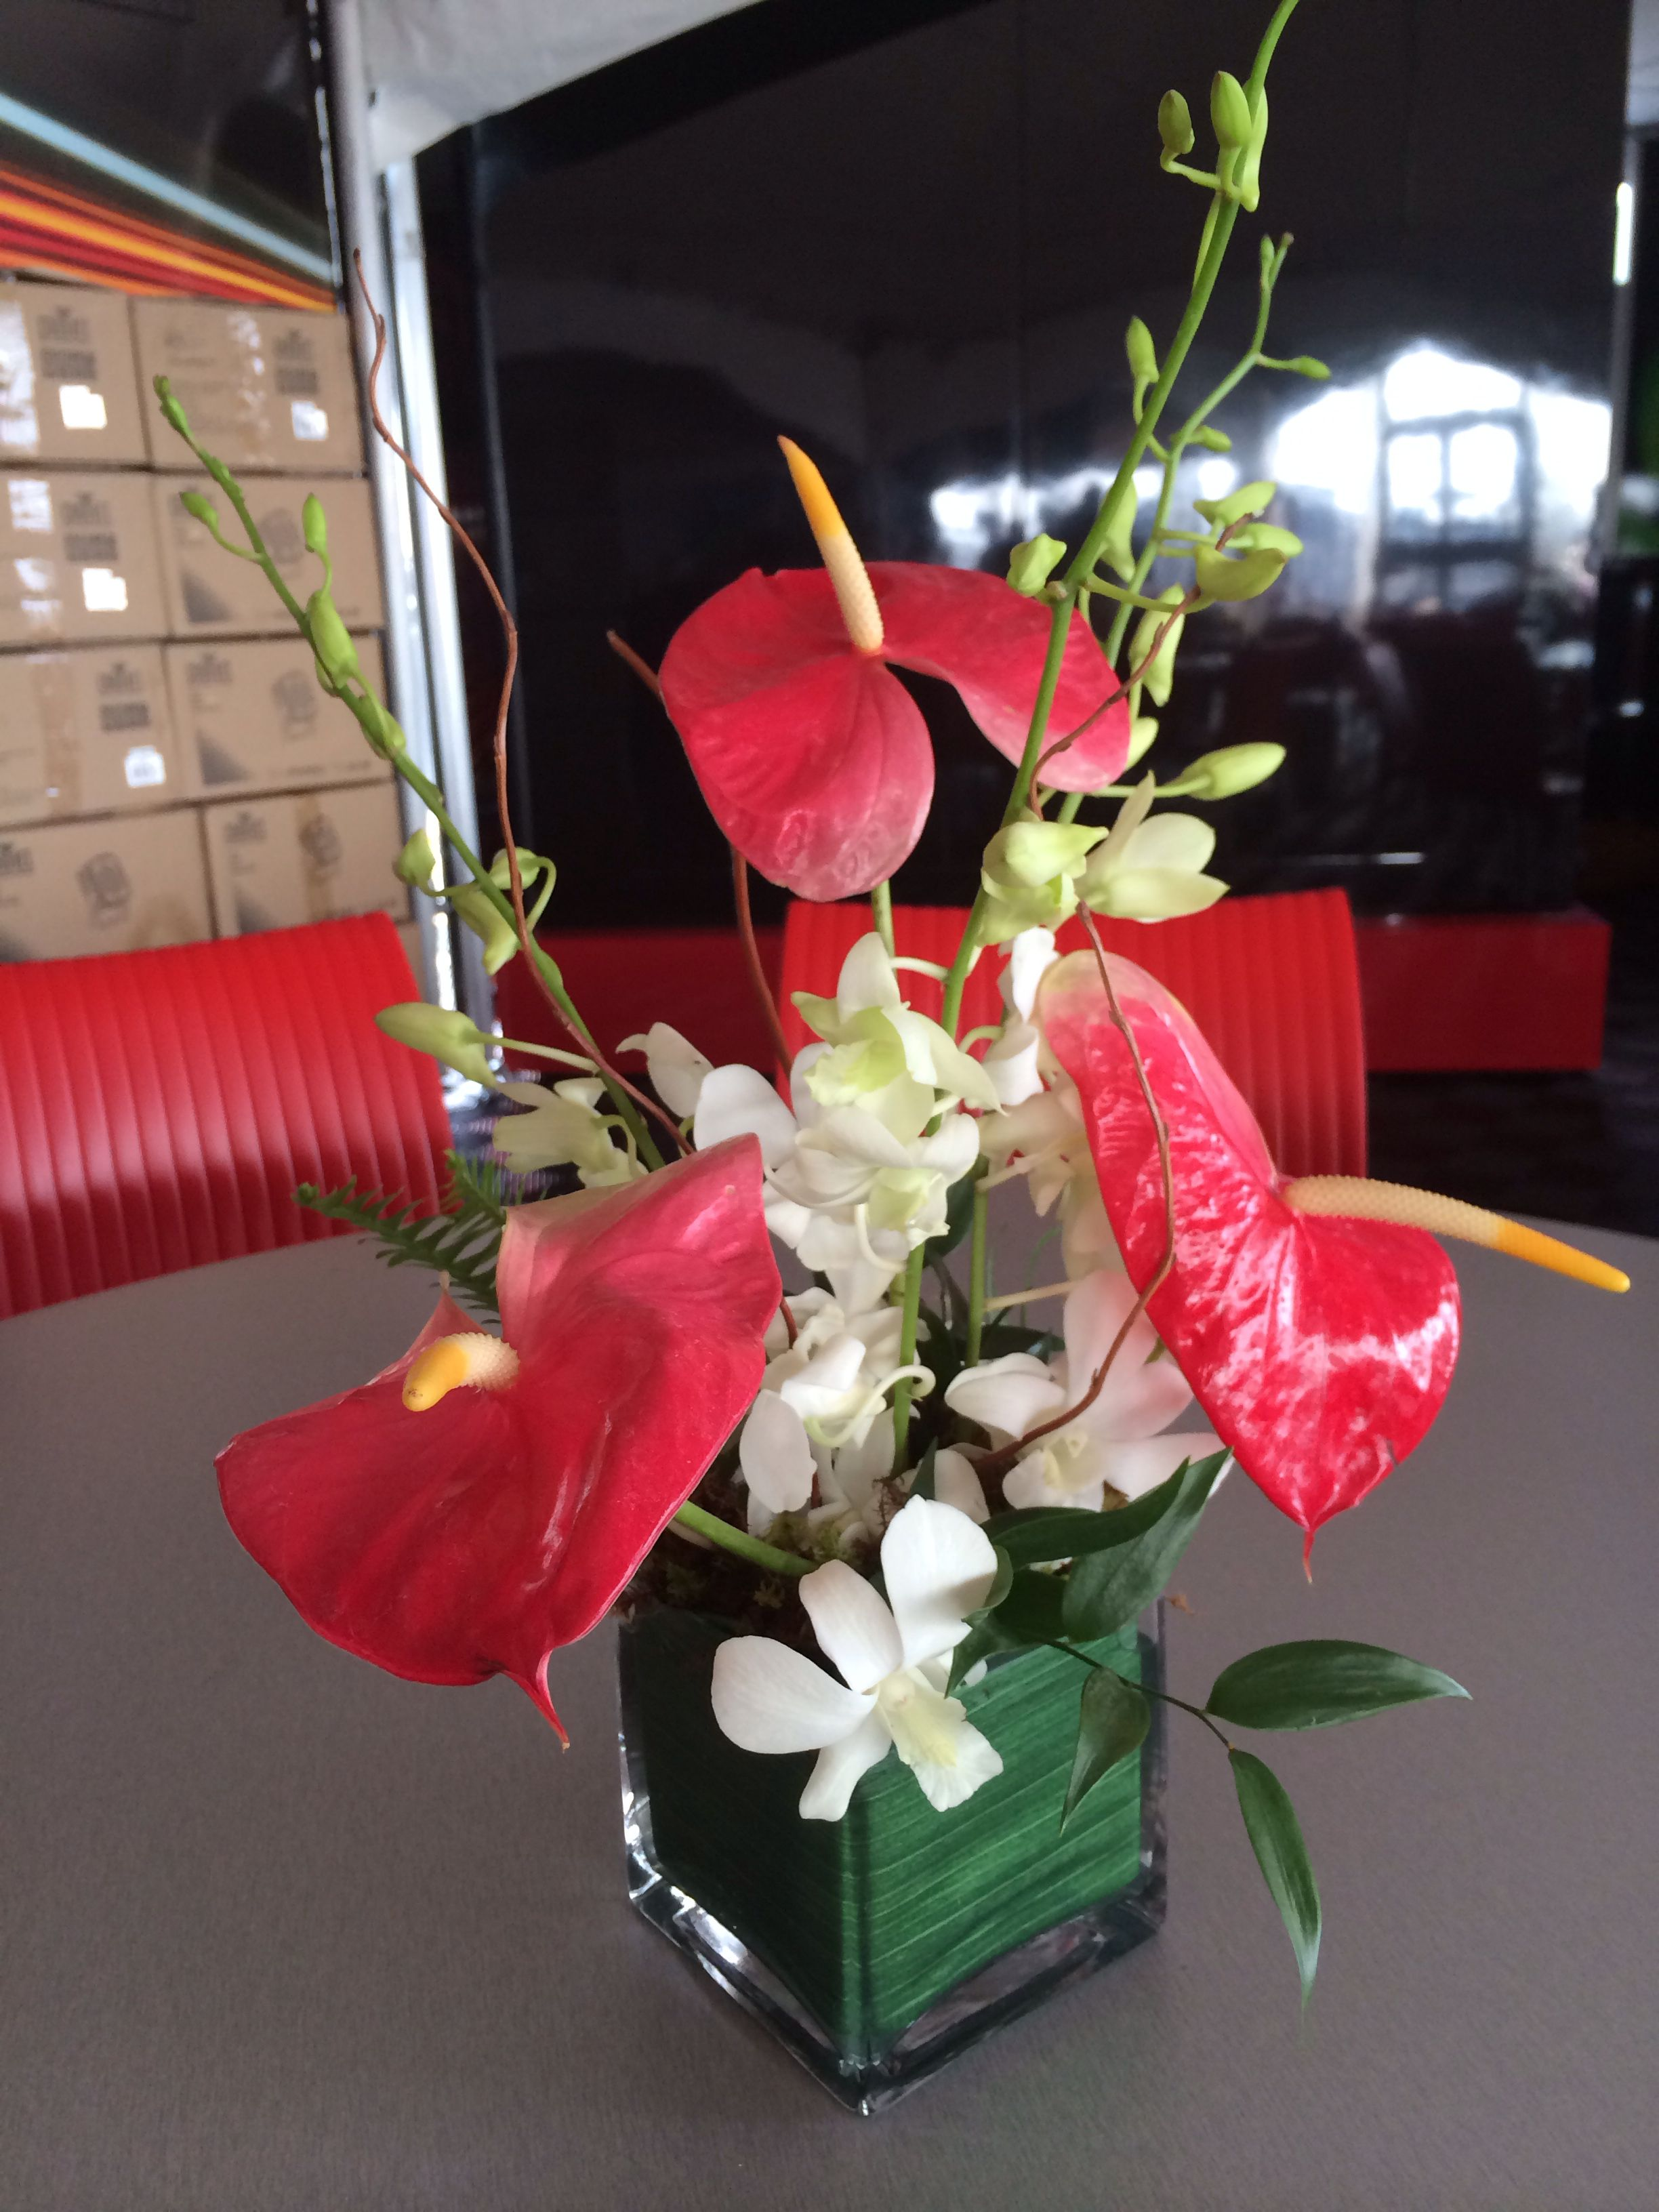 Tropical Centerpiece I Designed Using White Dendrobium Orchids And Red Anthuriums By Hobb Anthurium Arrangement Tropical Centerpieces White Dendrobium Orchids